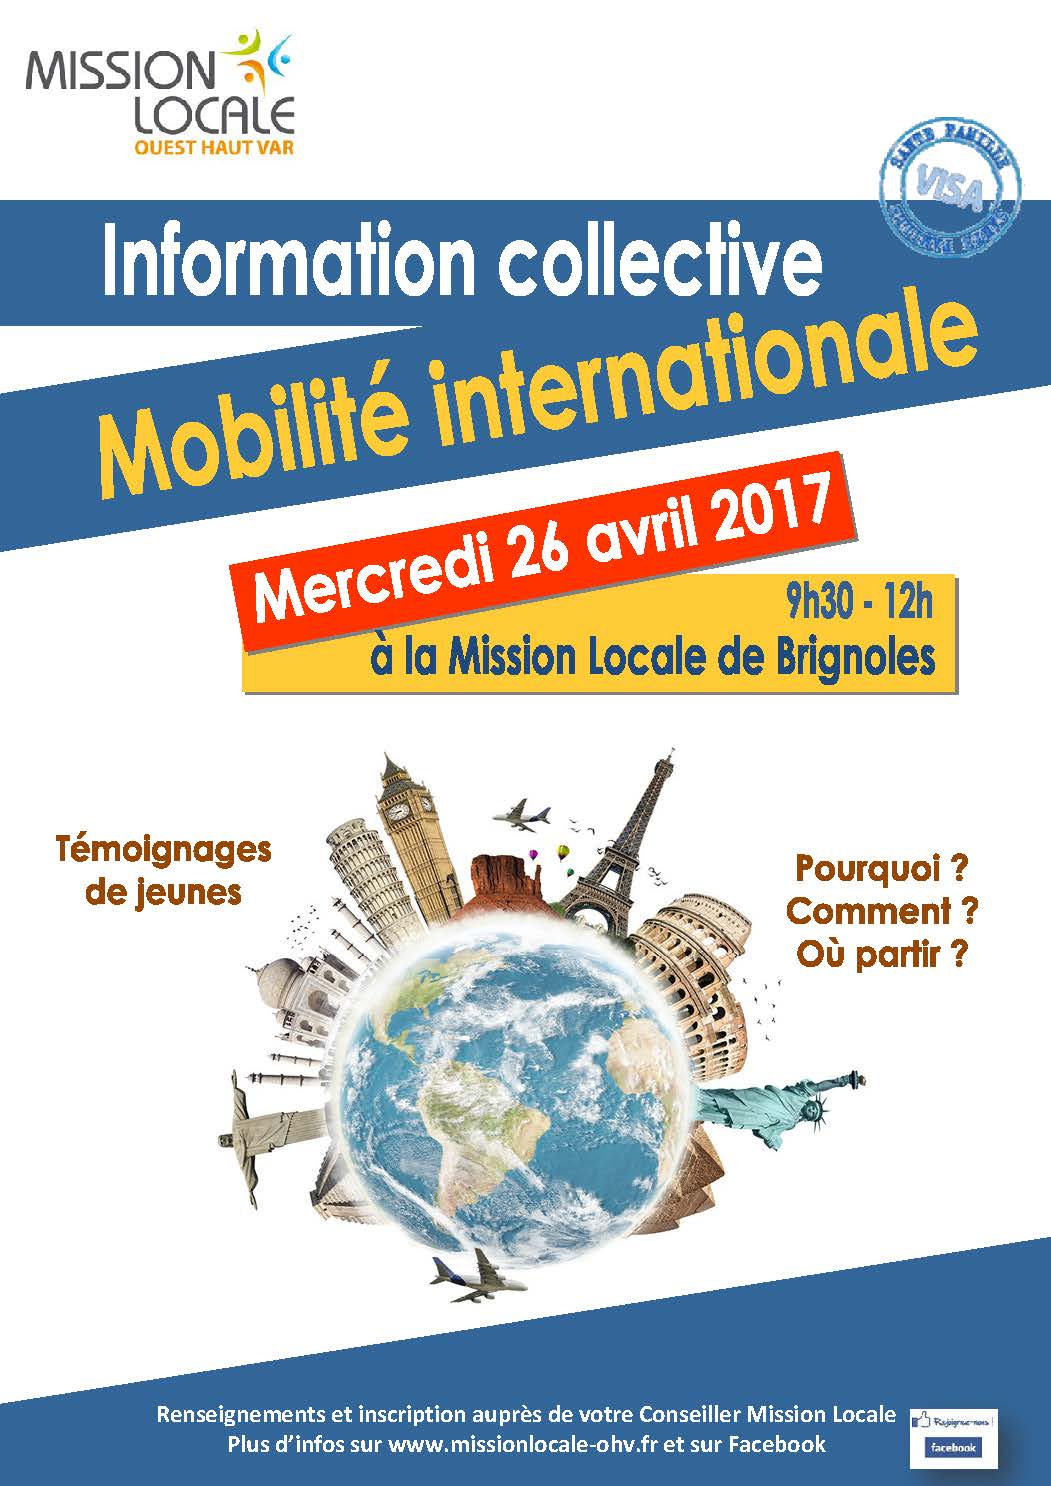 Mobilité internationale du 26.04.17